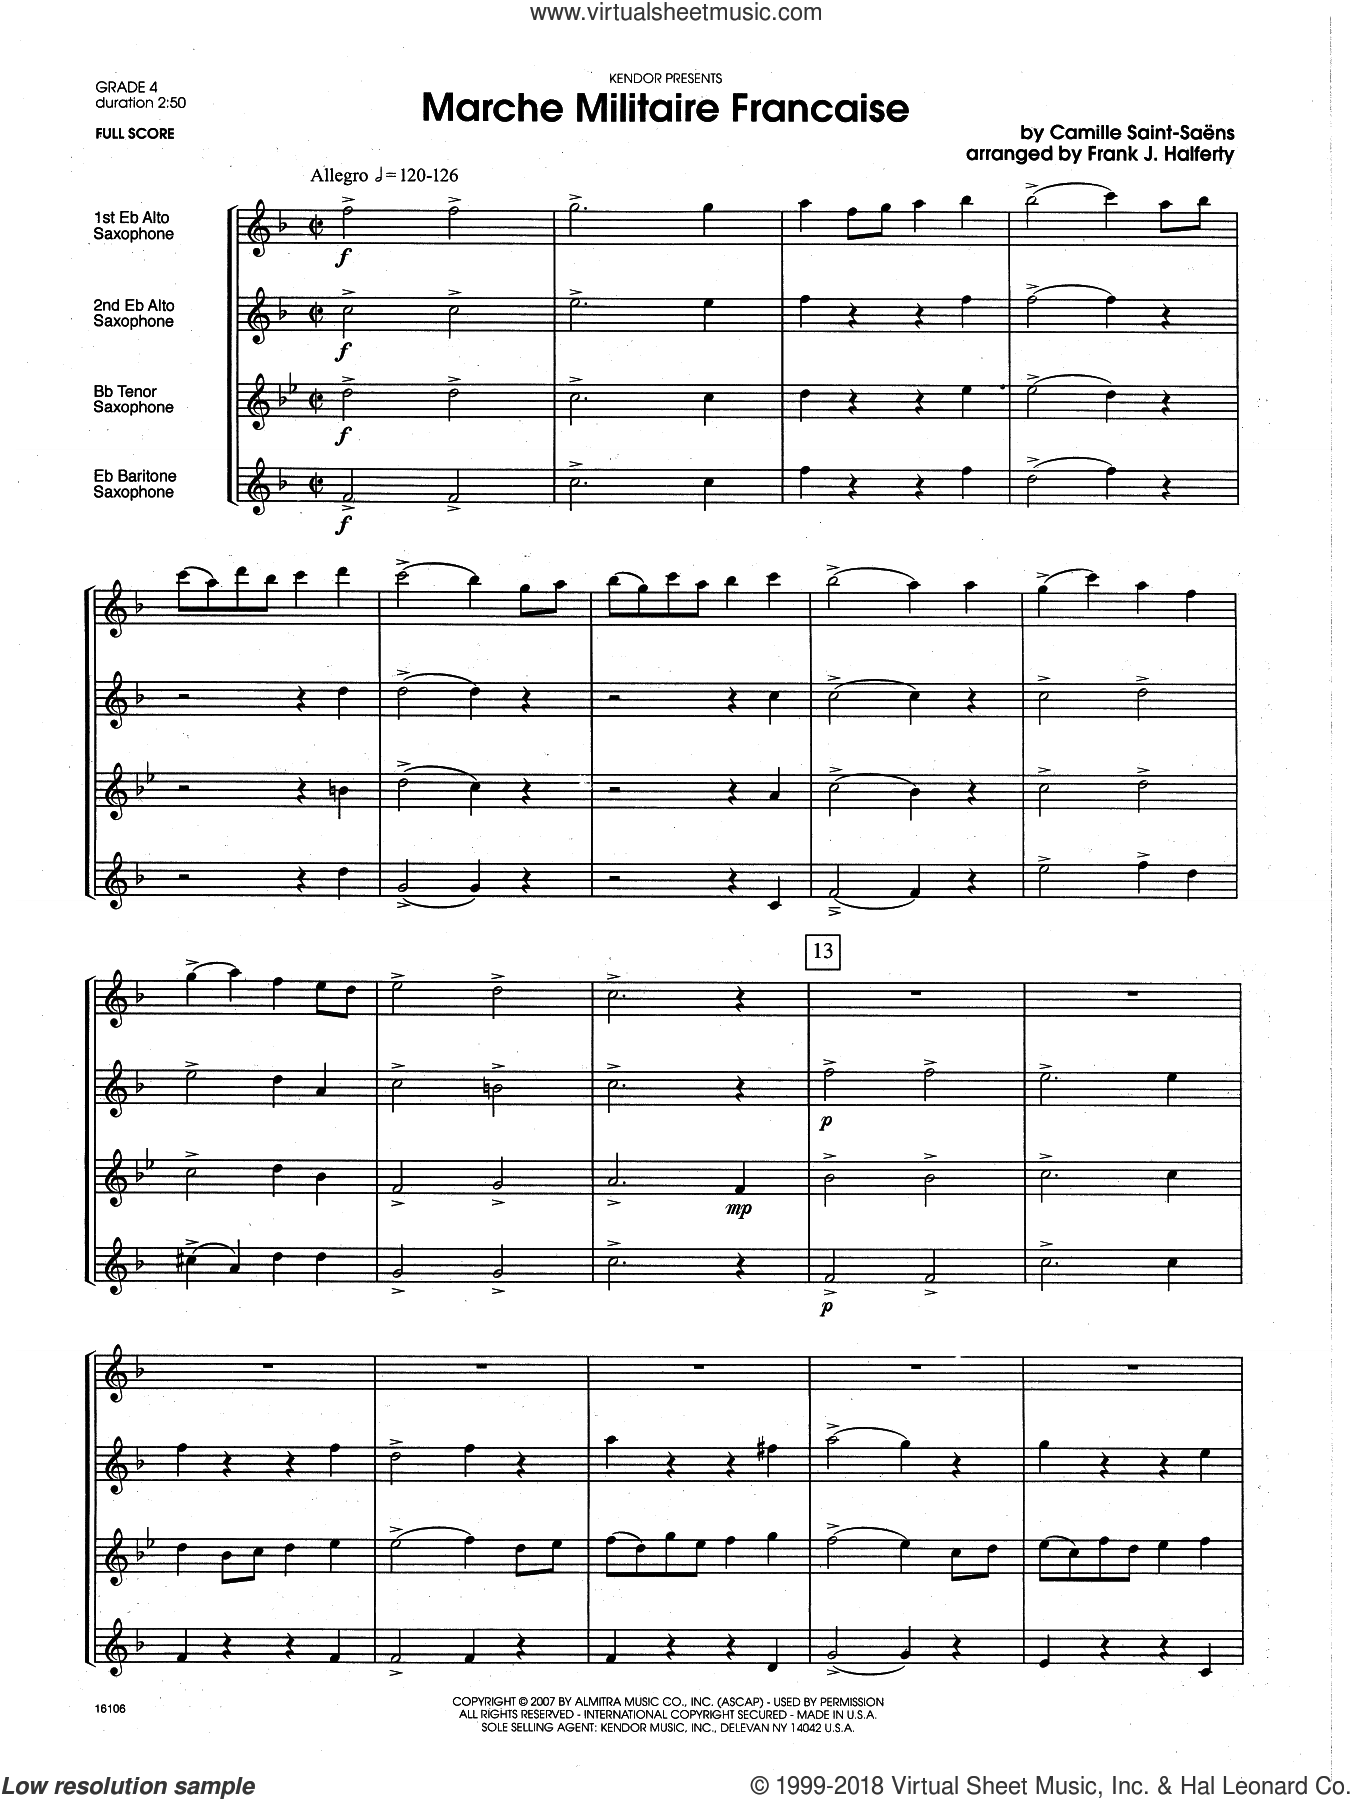 Marche Militaire Francaise (COMPLETE) sheet music for saxophone quartet by Camille Saint-Saens and Frank J. Halferty, classical score, intermediate skill level